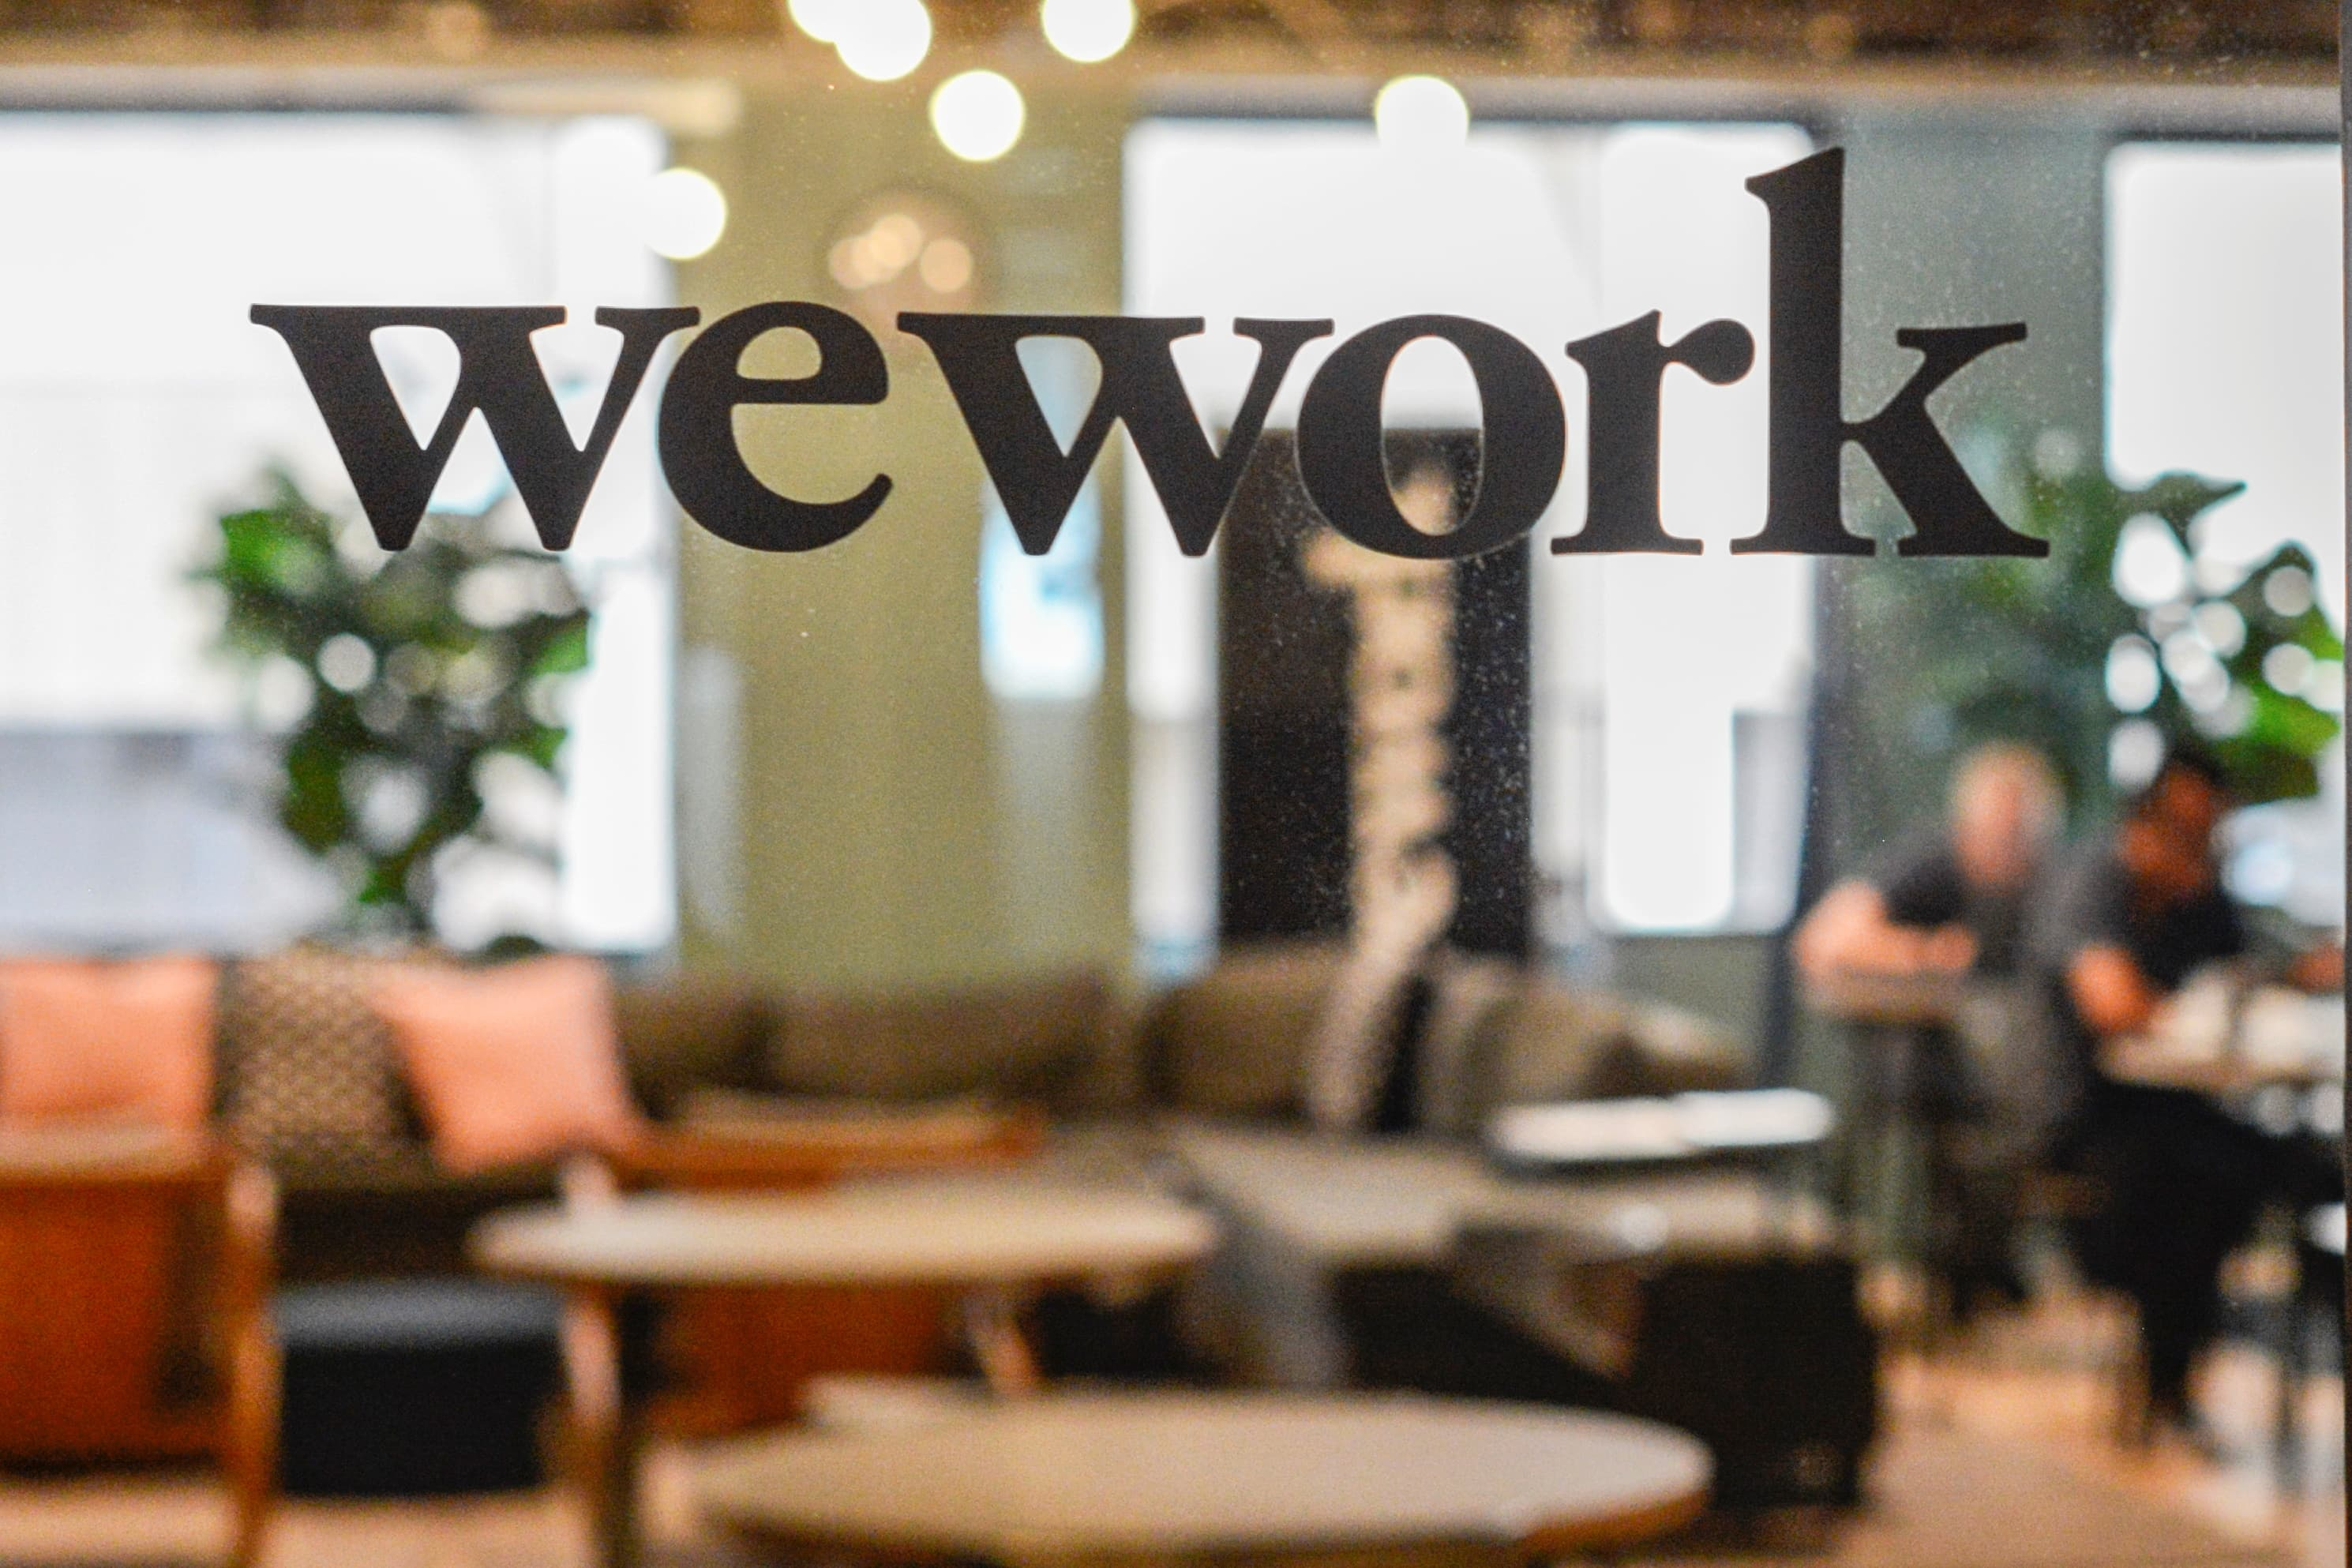 SoftBank will get the 'last laugh' when a 'profitable' WeWork goes public one day, Bernstein says